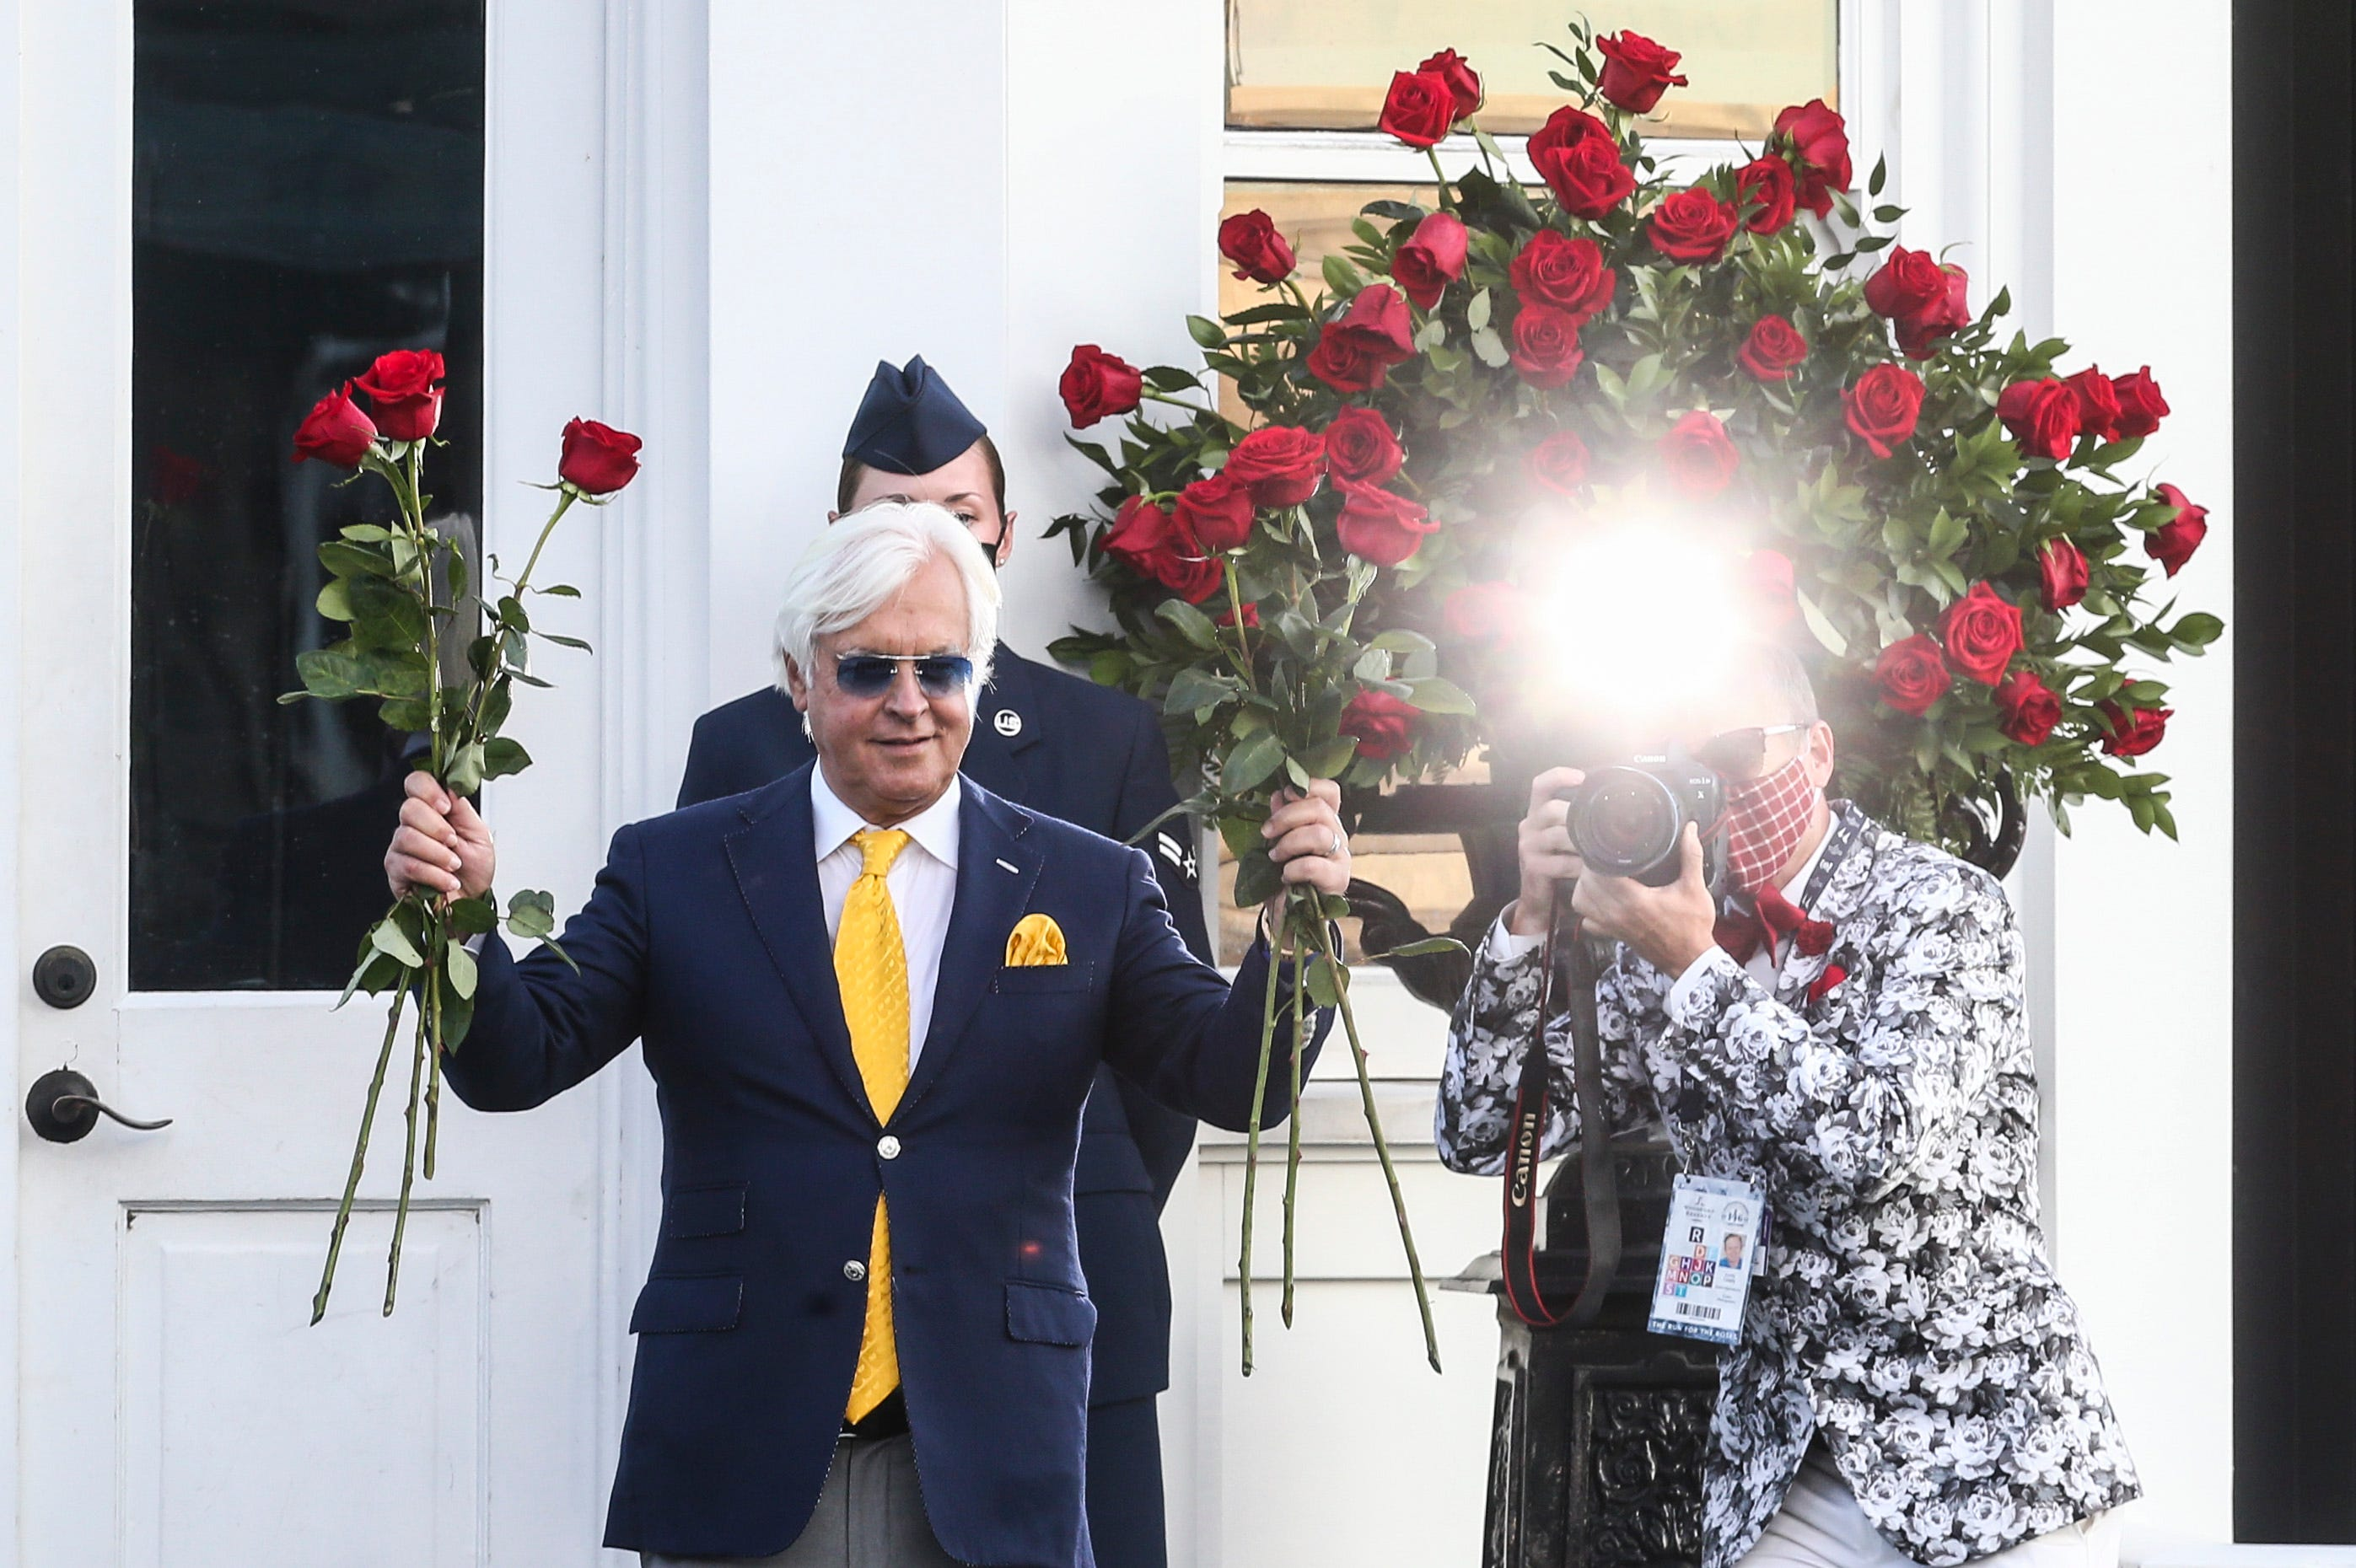 Despite injured assistant, scratched horse and tumble, trainer Bob Baffert wins Kentucky Derby again